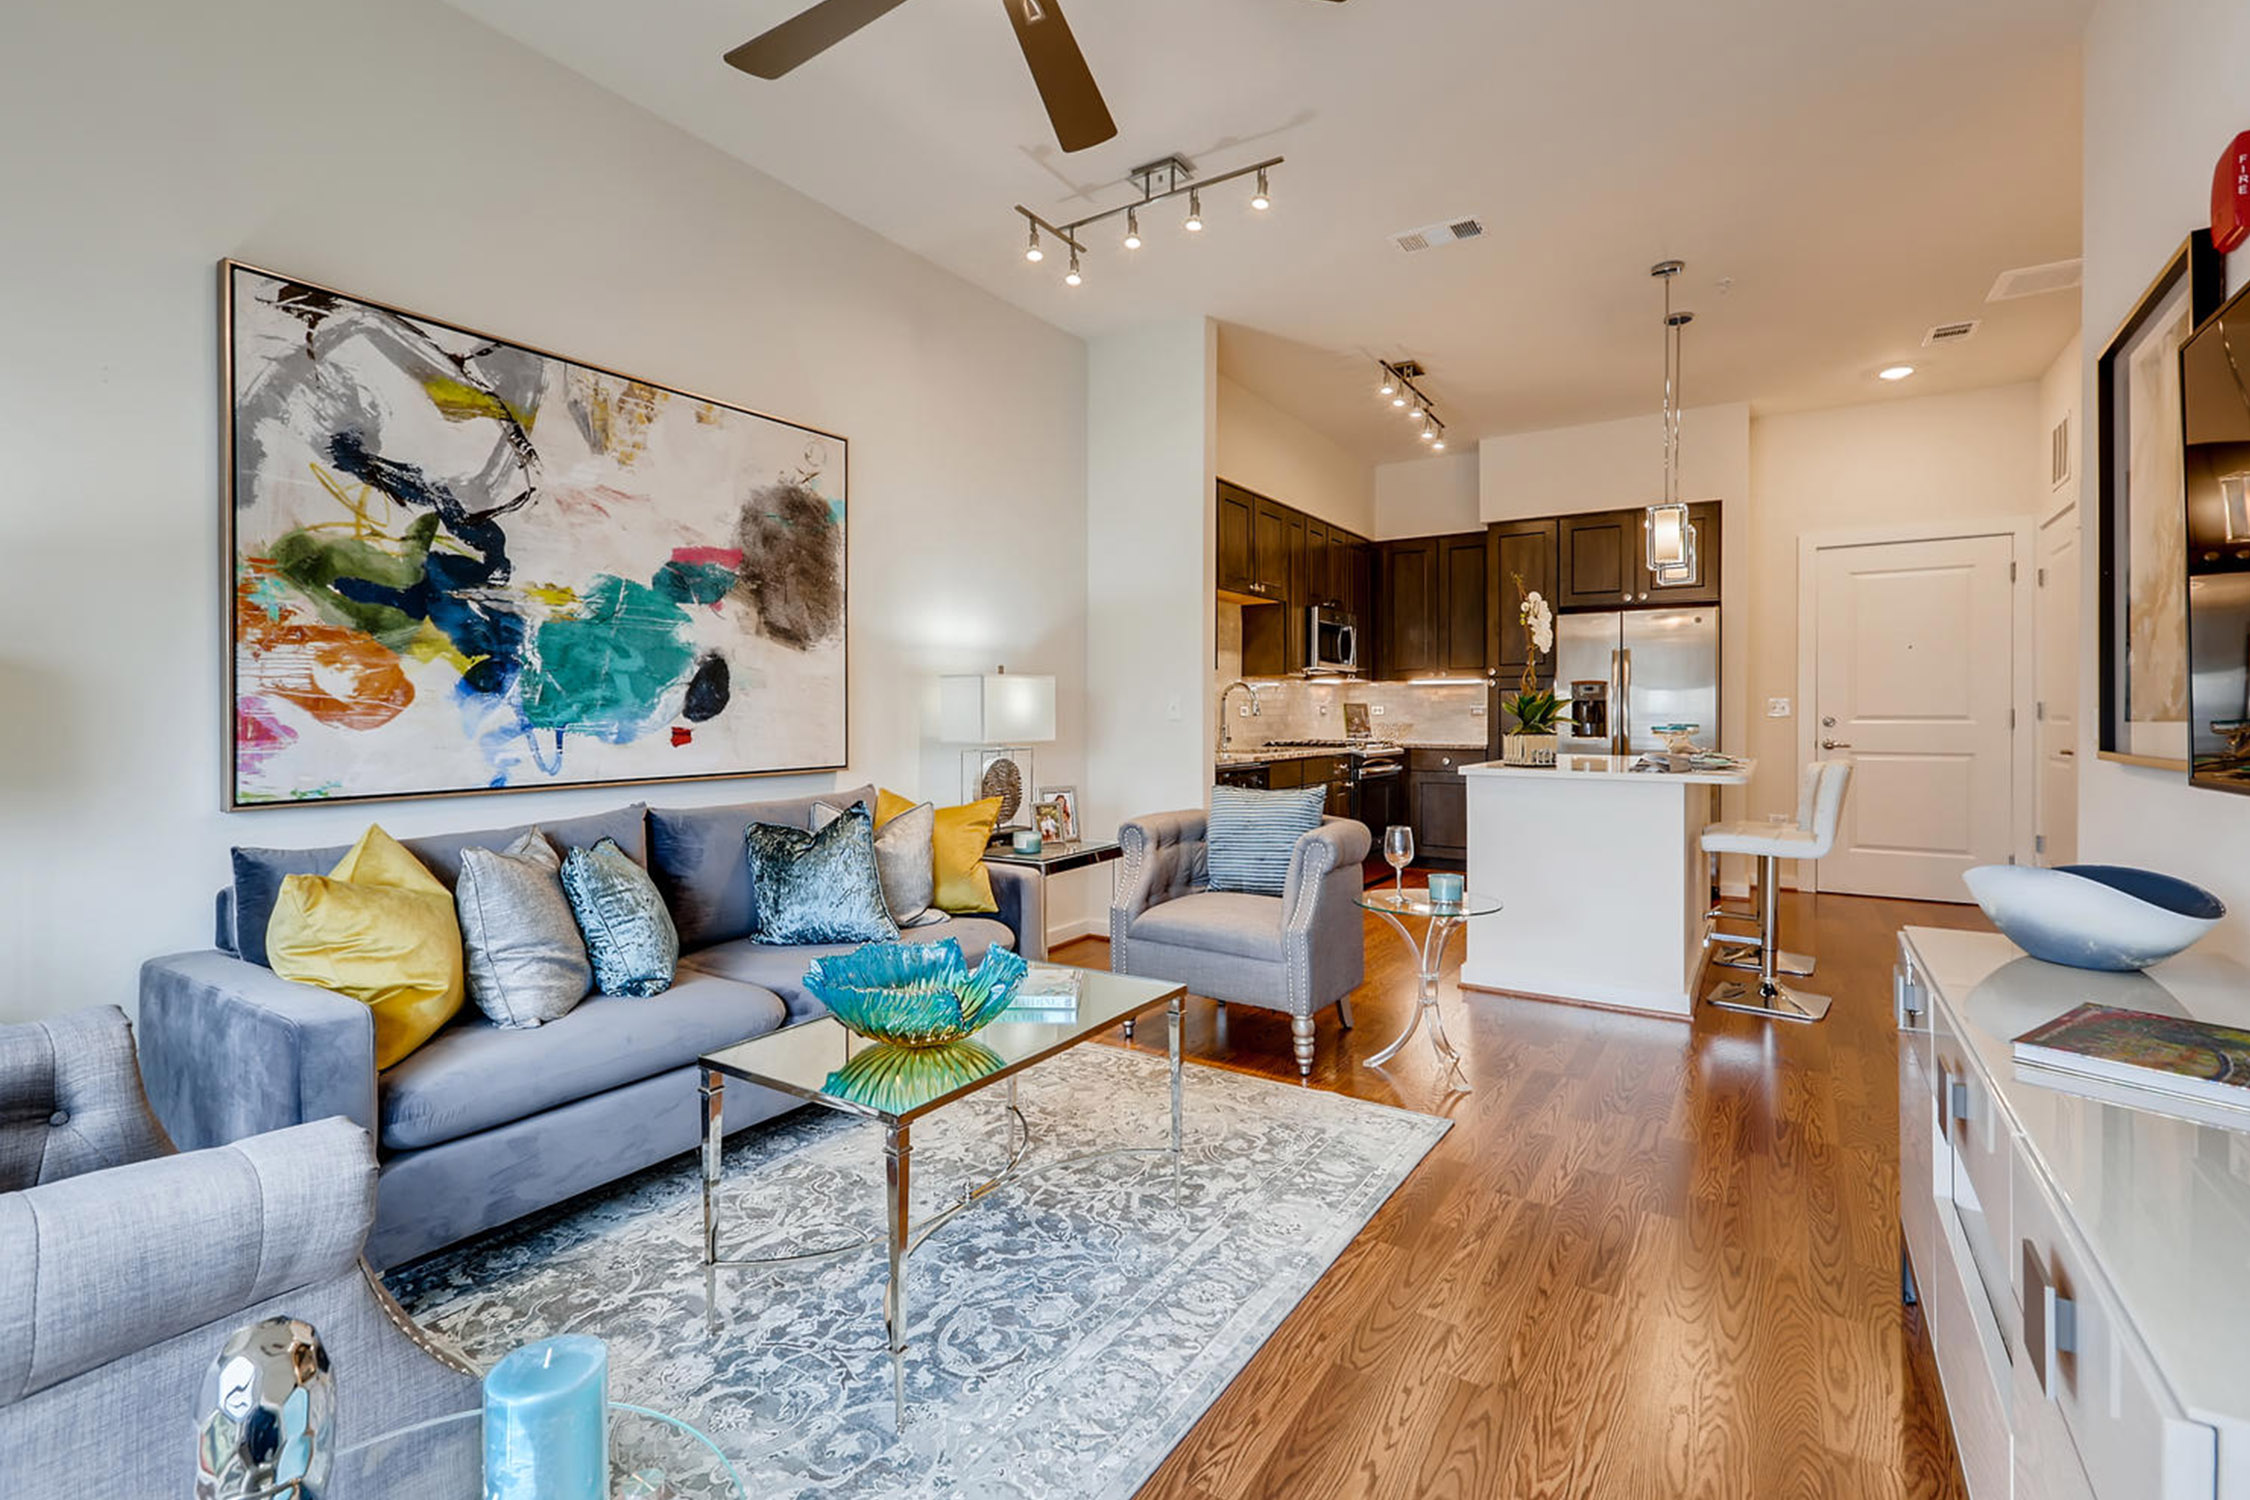 gallery | Skokie Apartments